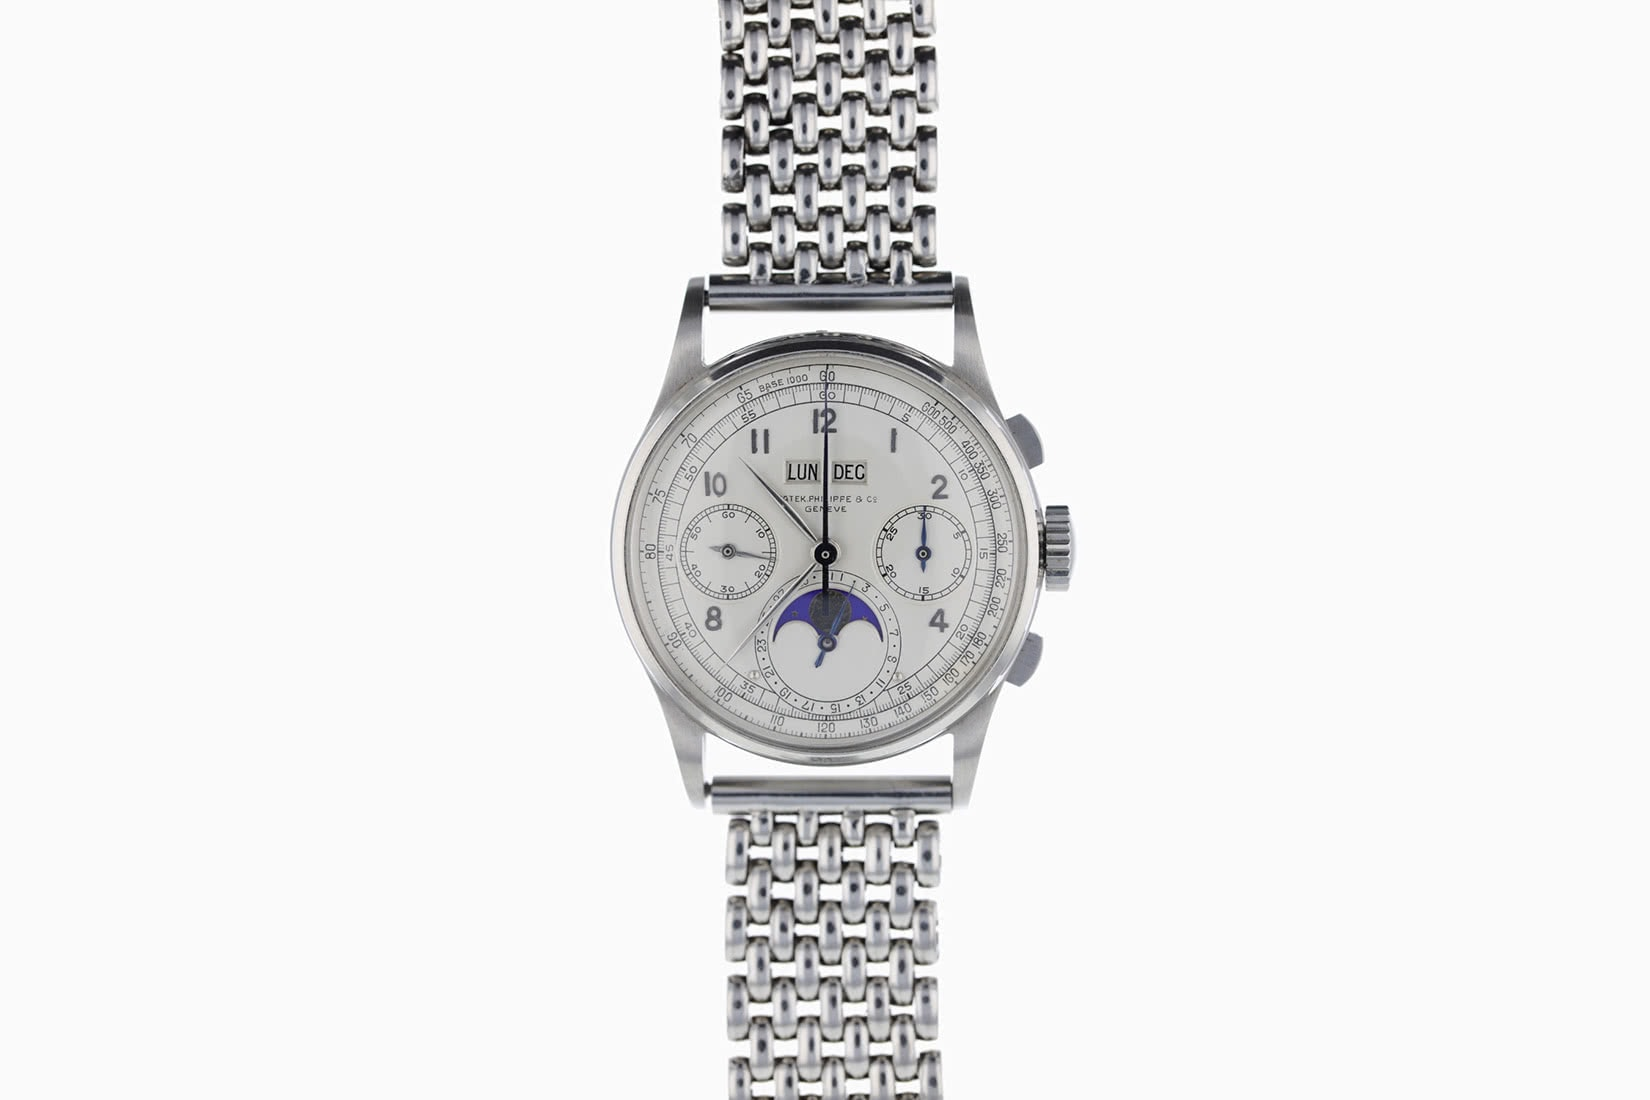 most expensive watches patek philippe stainless steel ref 1518 - Luxe Digital